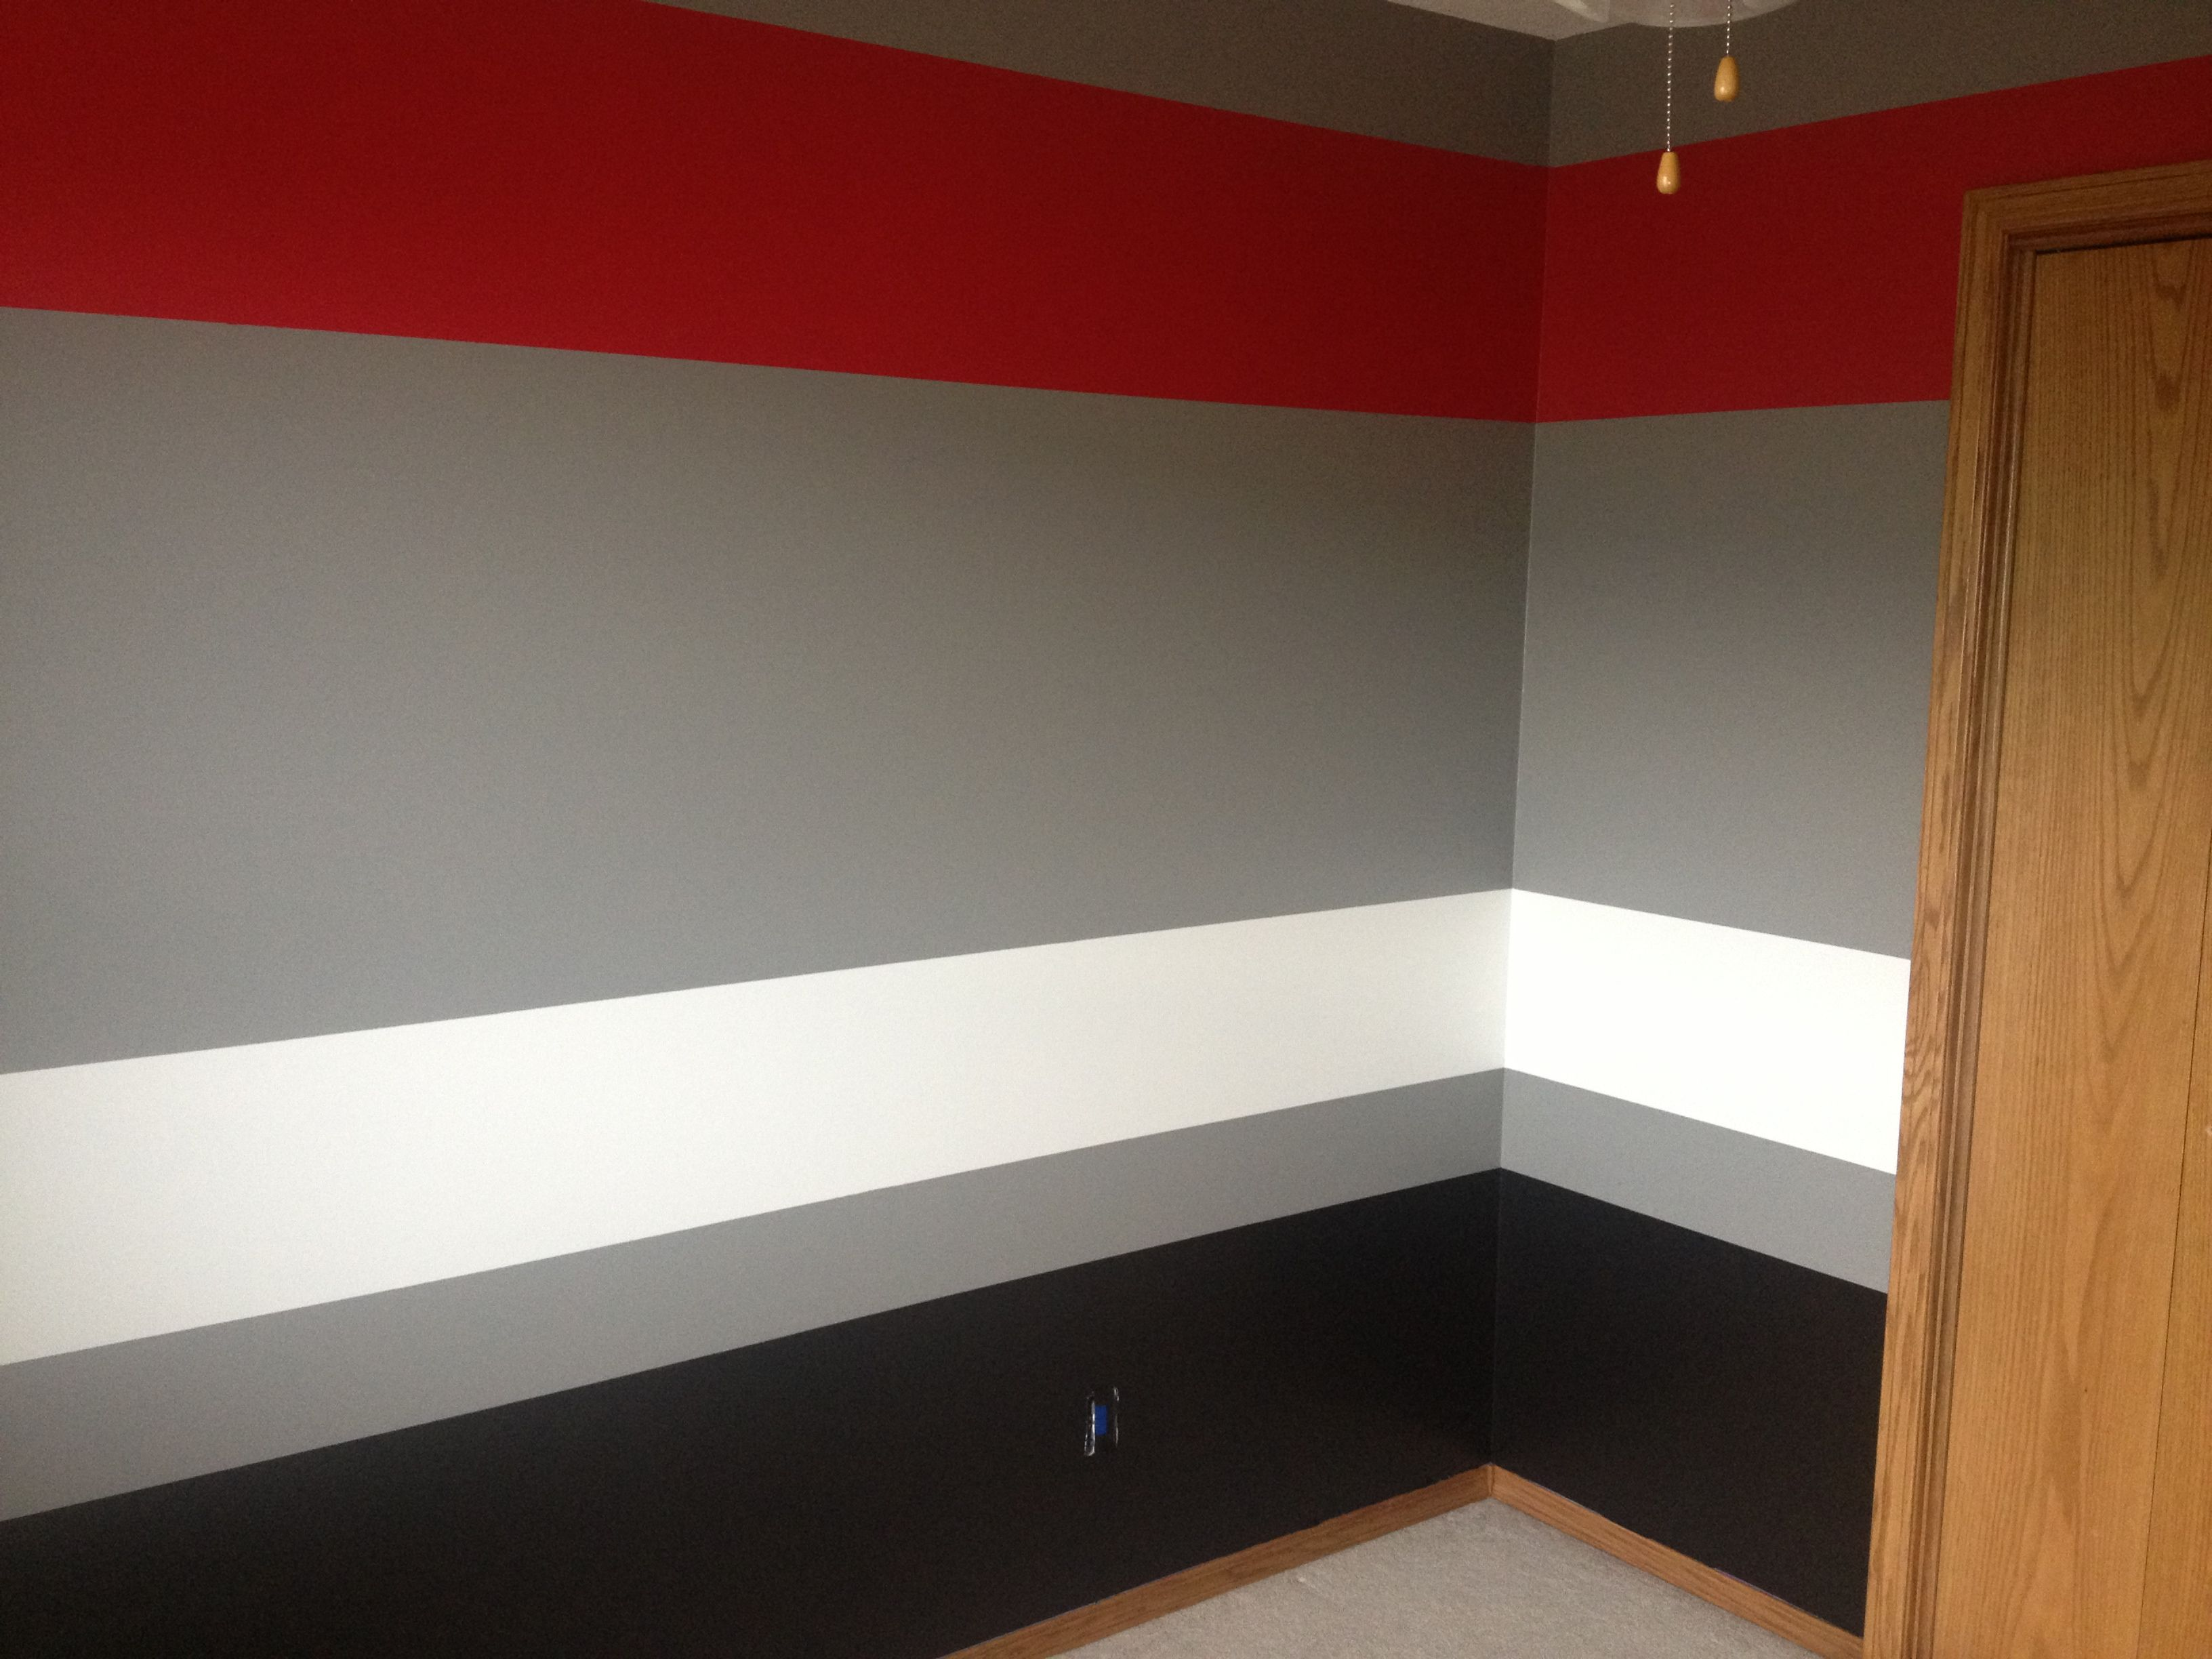 Bedroom color ideas grey and red - Painted Room Grey Red White Black